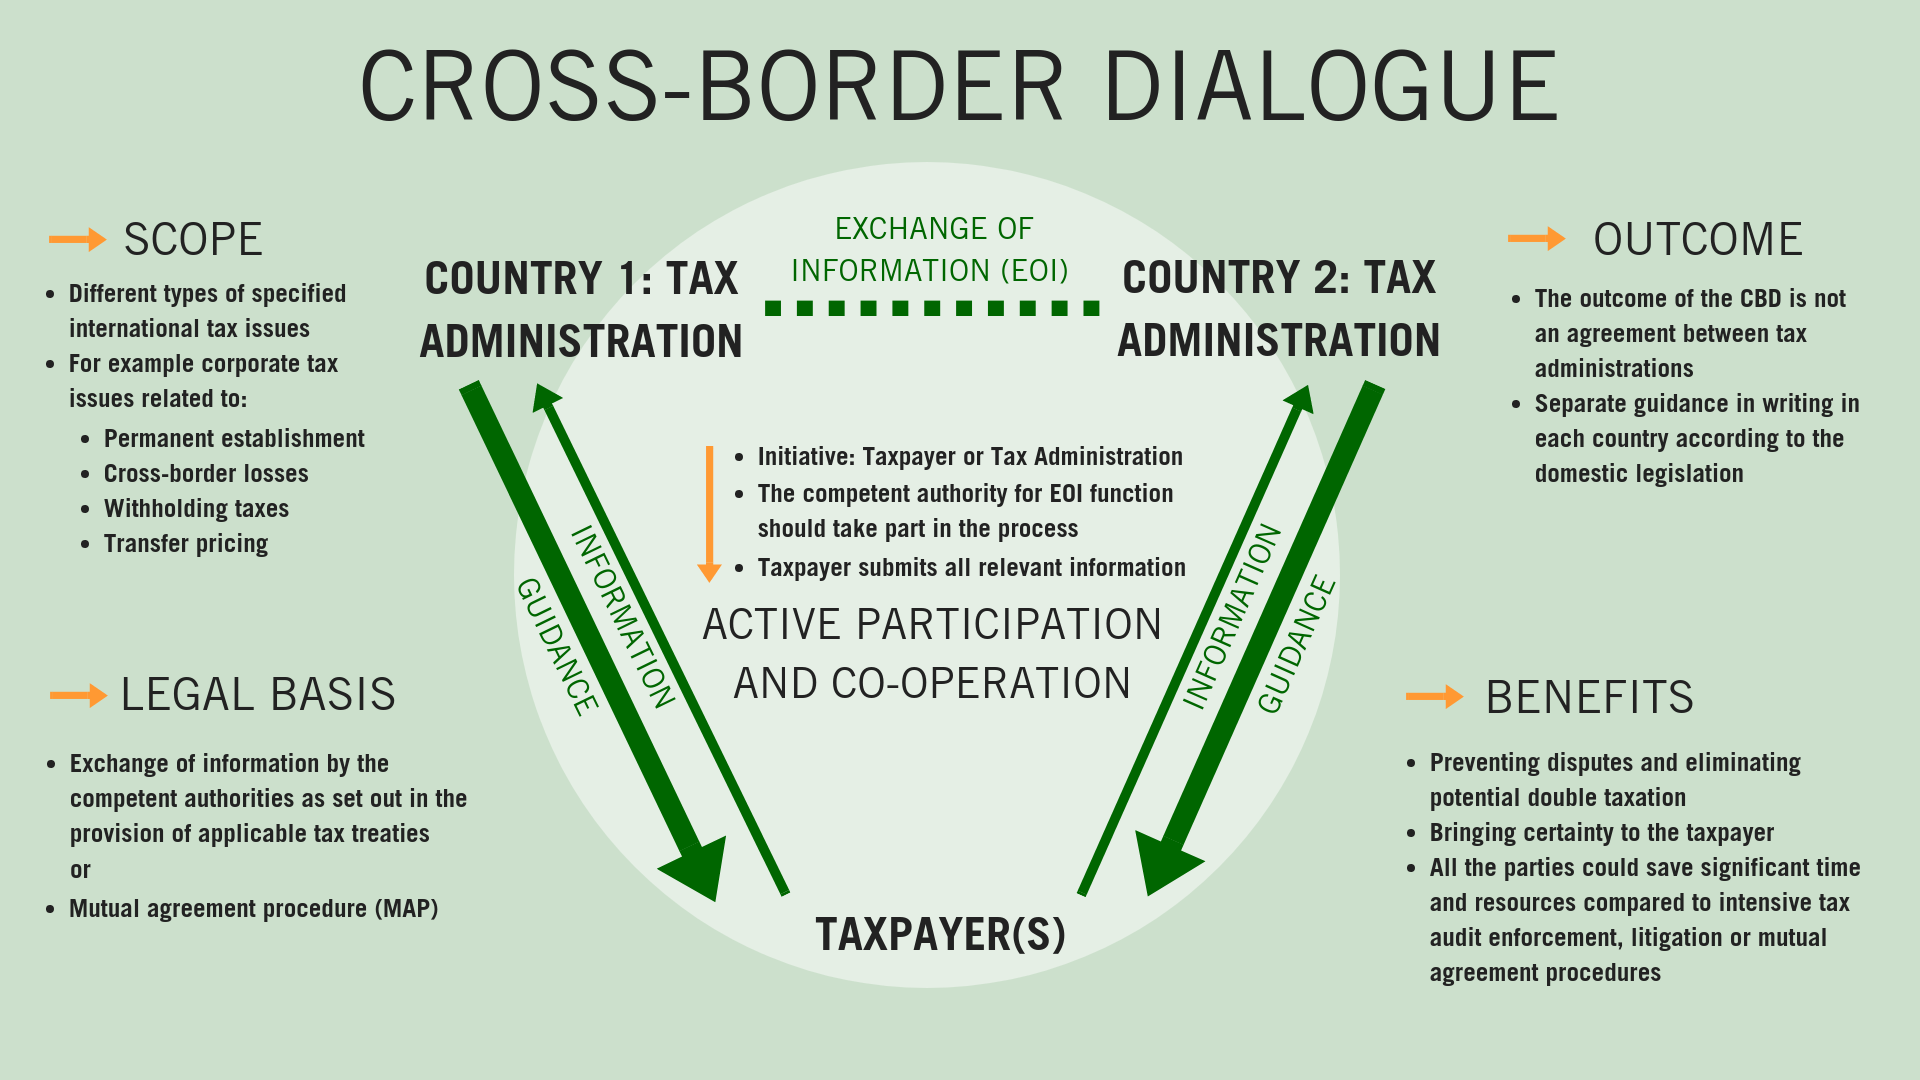 What is the scope, outcome and legal basis when considering a cross-border dialogue. There are benefits in having a cross-border dialogue, for all parties involved.